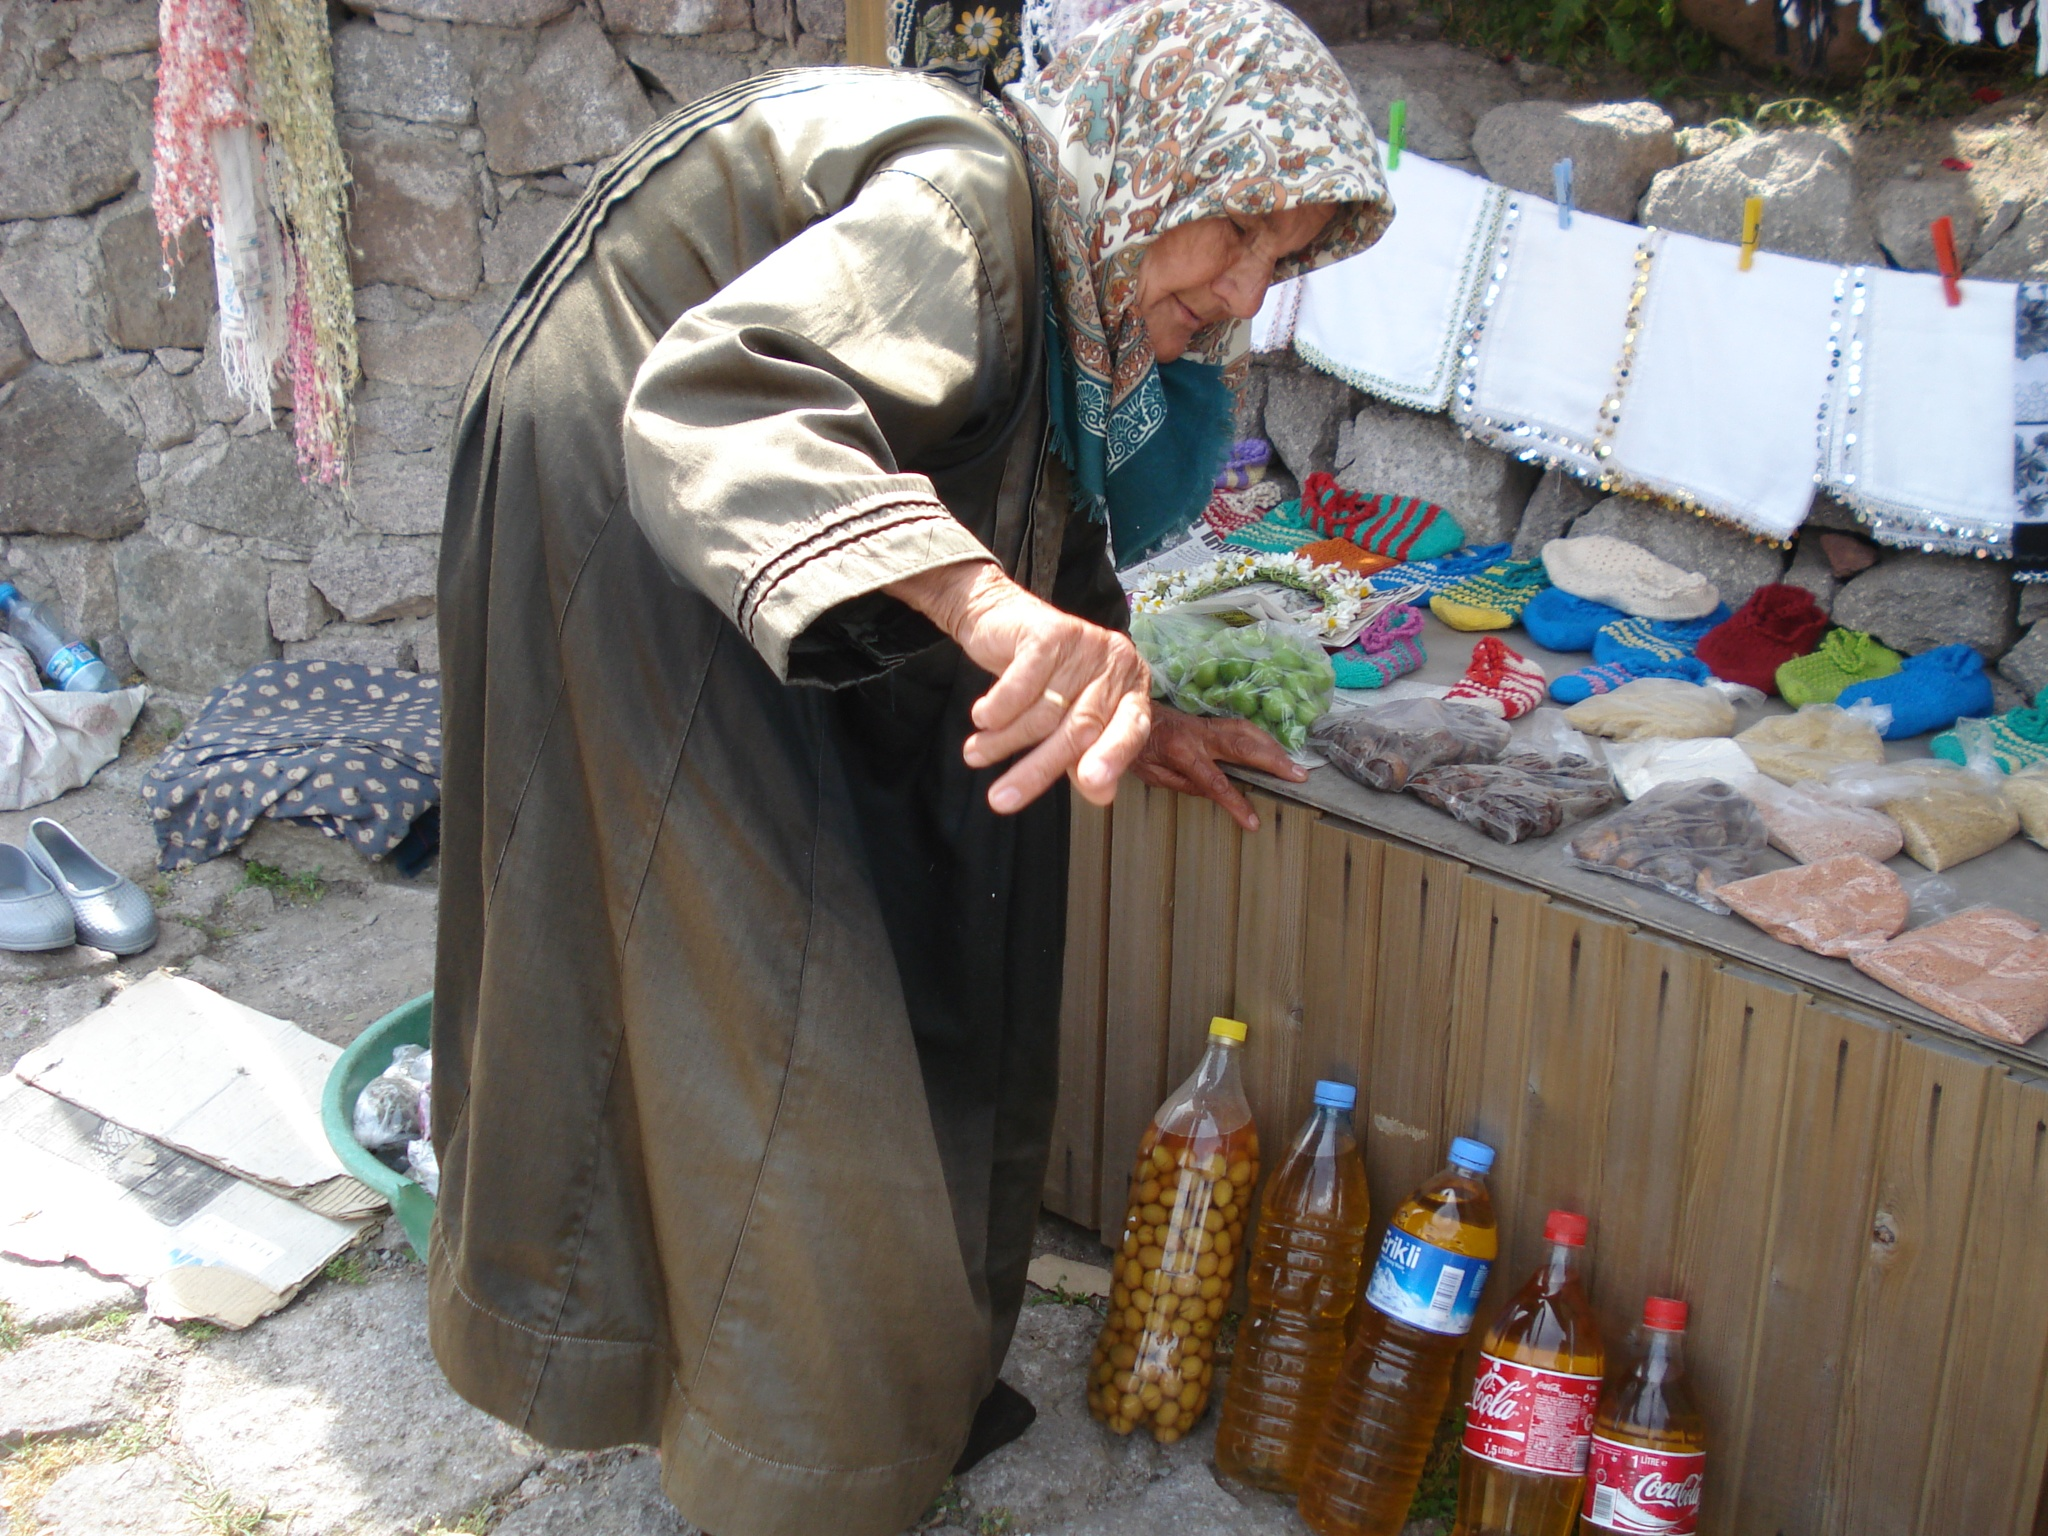 WORKING...TO SELL.. by GÜVEN YENERSOY